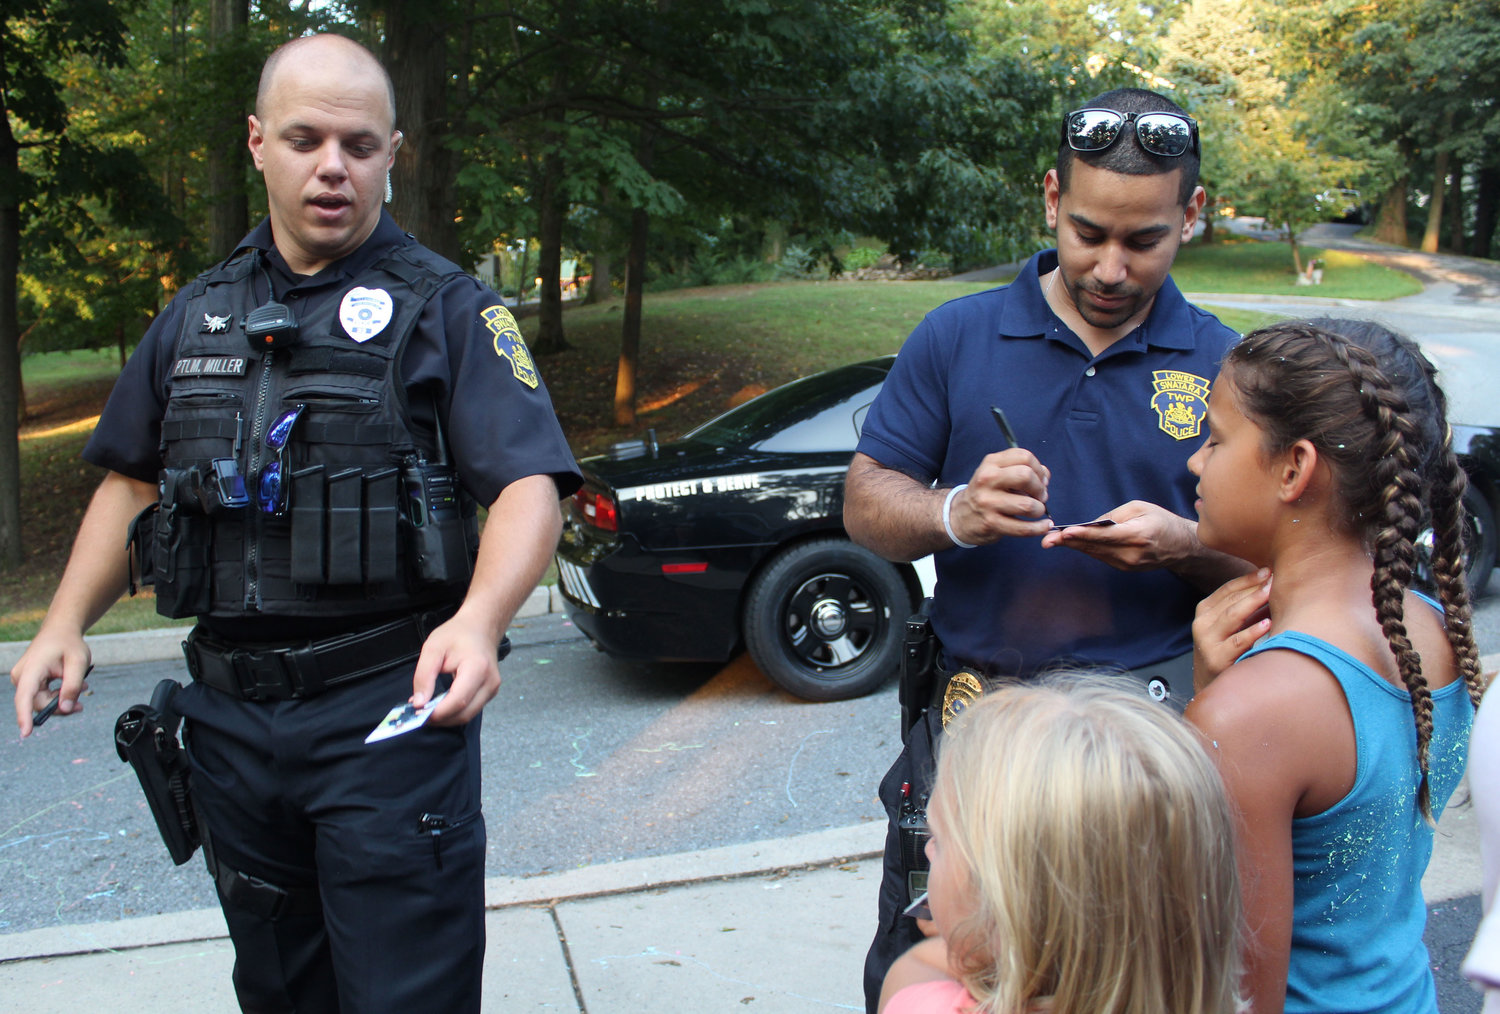 Lower Swatara Officer Jonathan Miller and Detective Antonio Gonzalez Jr. sign baseball cards for kids during National Night Out in Lower Swatara on Aug. 6.